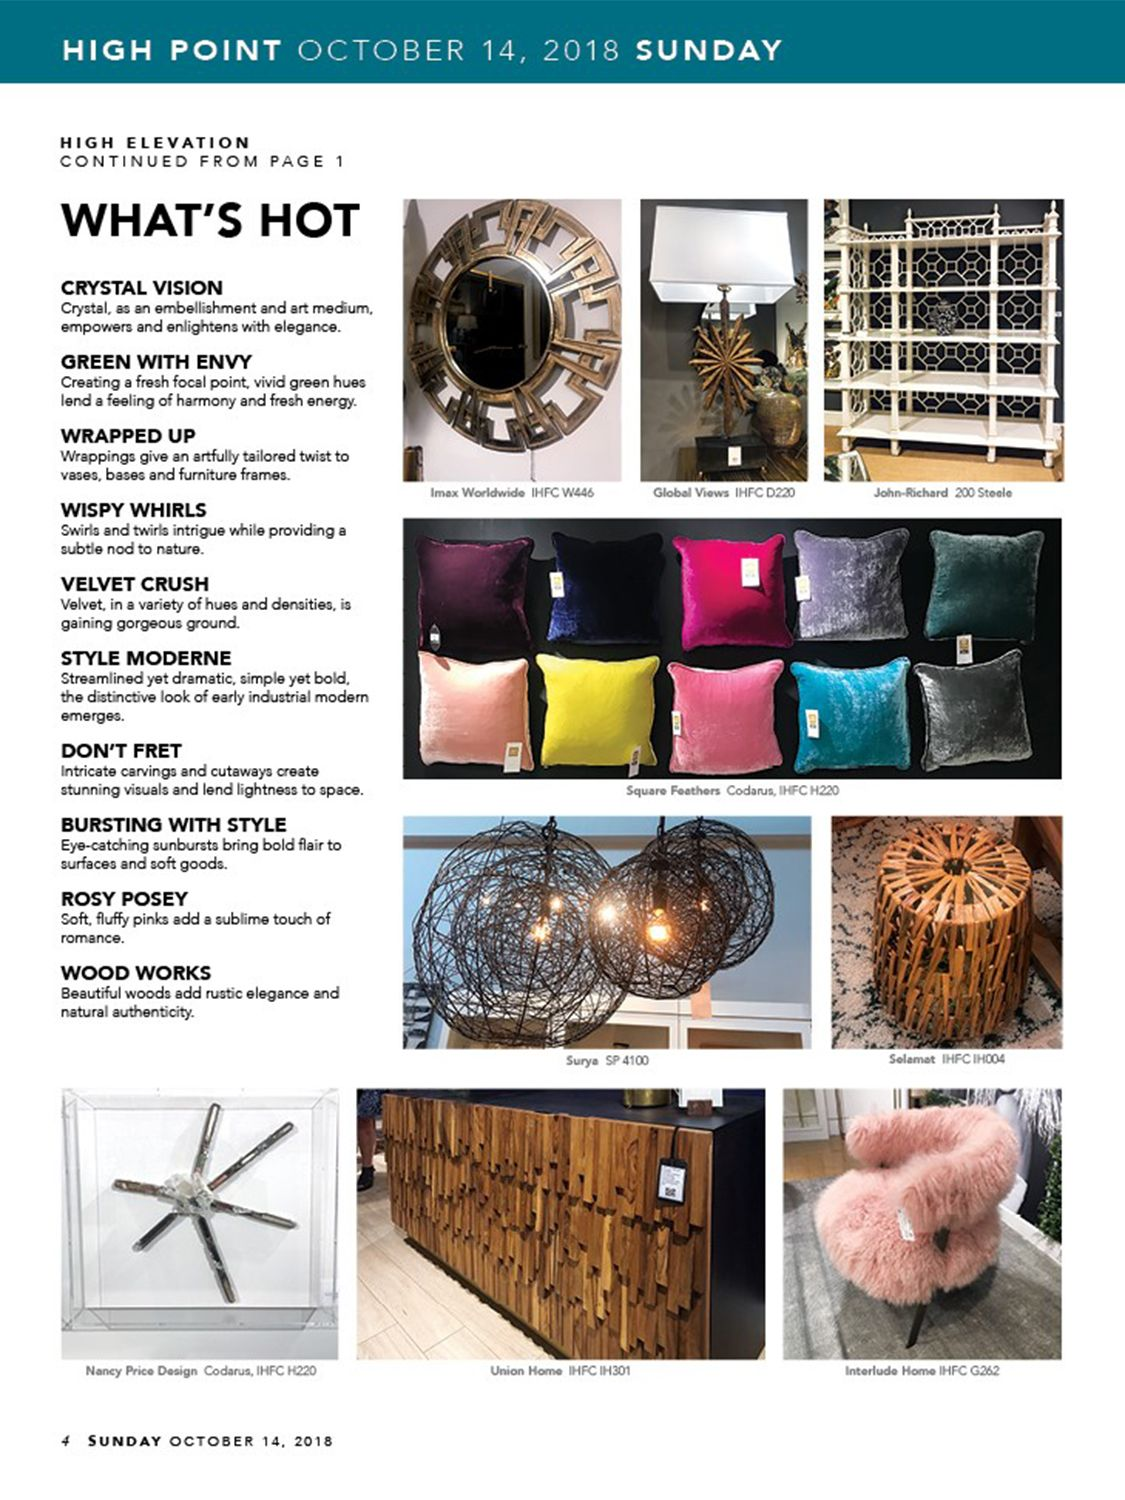 Home Accents Today - Sunday 10, 2018